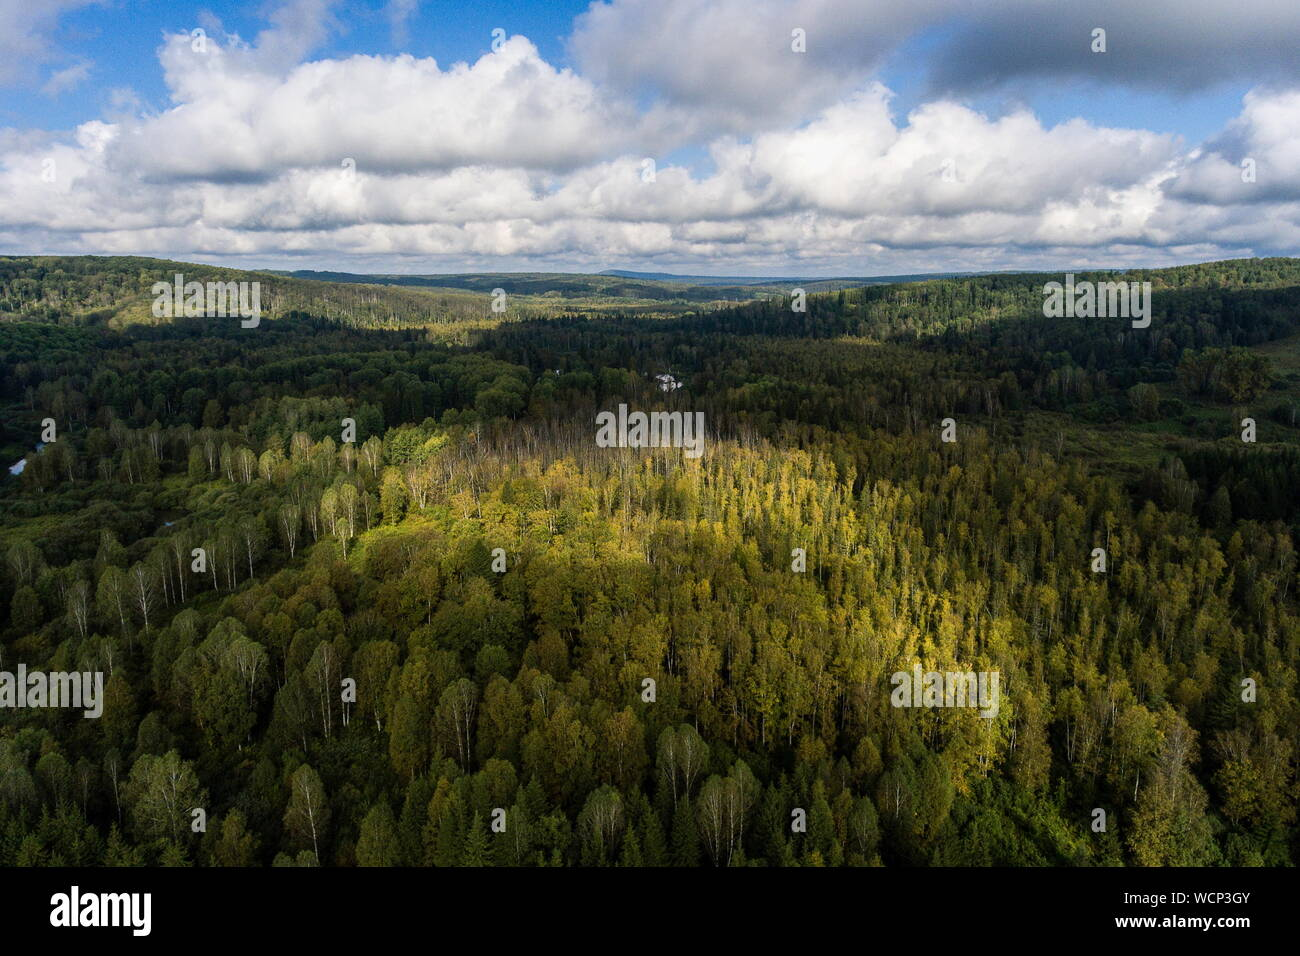 Russia. 28th Aug, 2019. ALTAI TERRITORY, RUSSIA - AUGUST 28, 2019: A locality in Togul District of Russia's Altai Territory, which is to become part of a protected area under the working name of Togul National Park; according to the Russian government's project Ekologia (Ecology), the proposed national park is to be established by 2024 and to include parts of Zarinsk District, Togul District, and Yeltsovka District of the Altai Territory, with a total area of over 160 hectares. Kirill Kukhmar/TASS Credit: ITAR-TASS News Agency/Alamy Live News Stock Photo